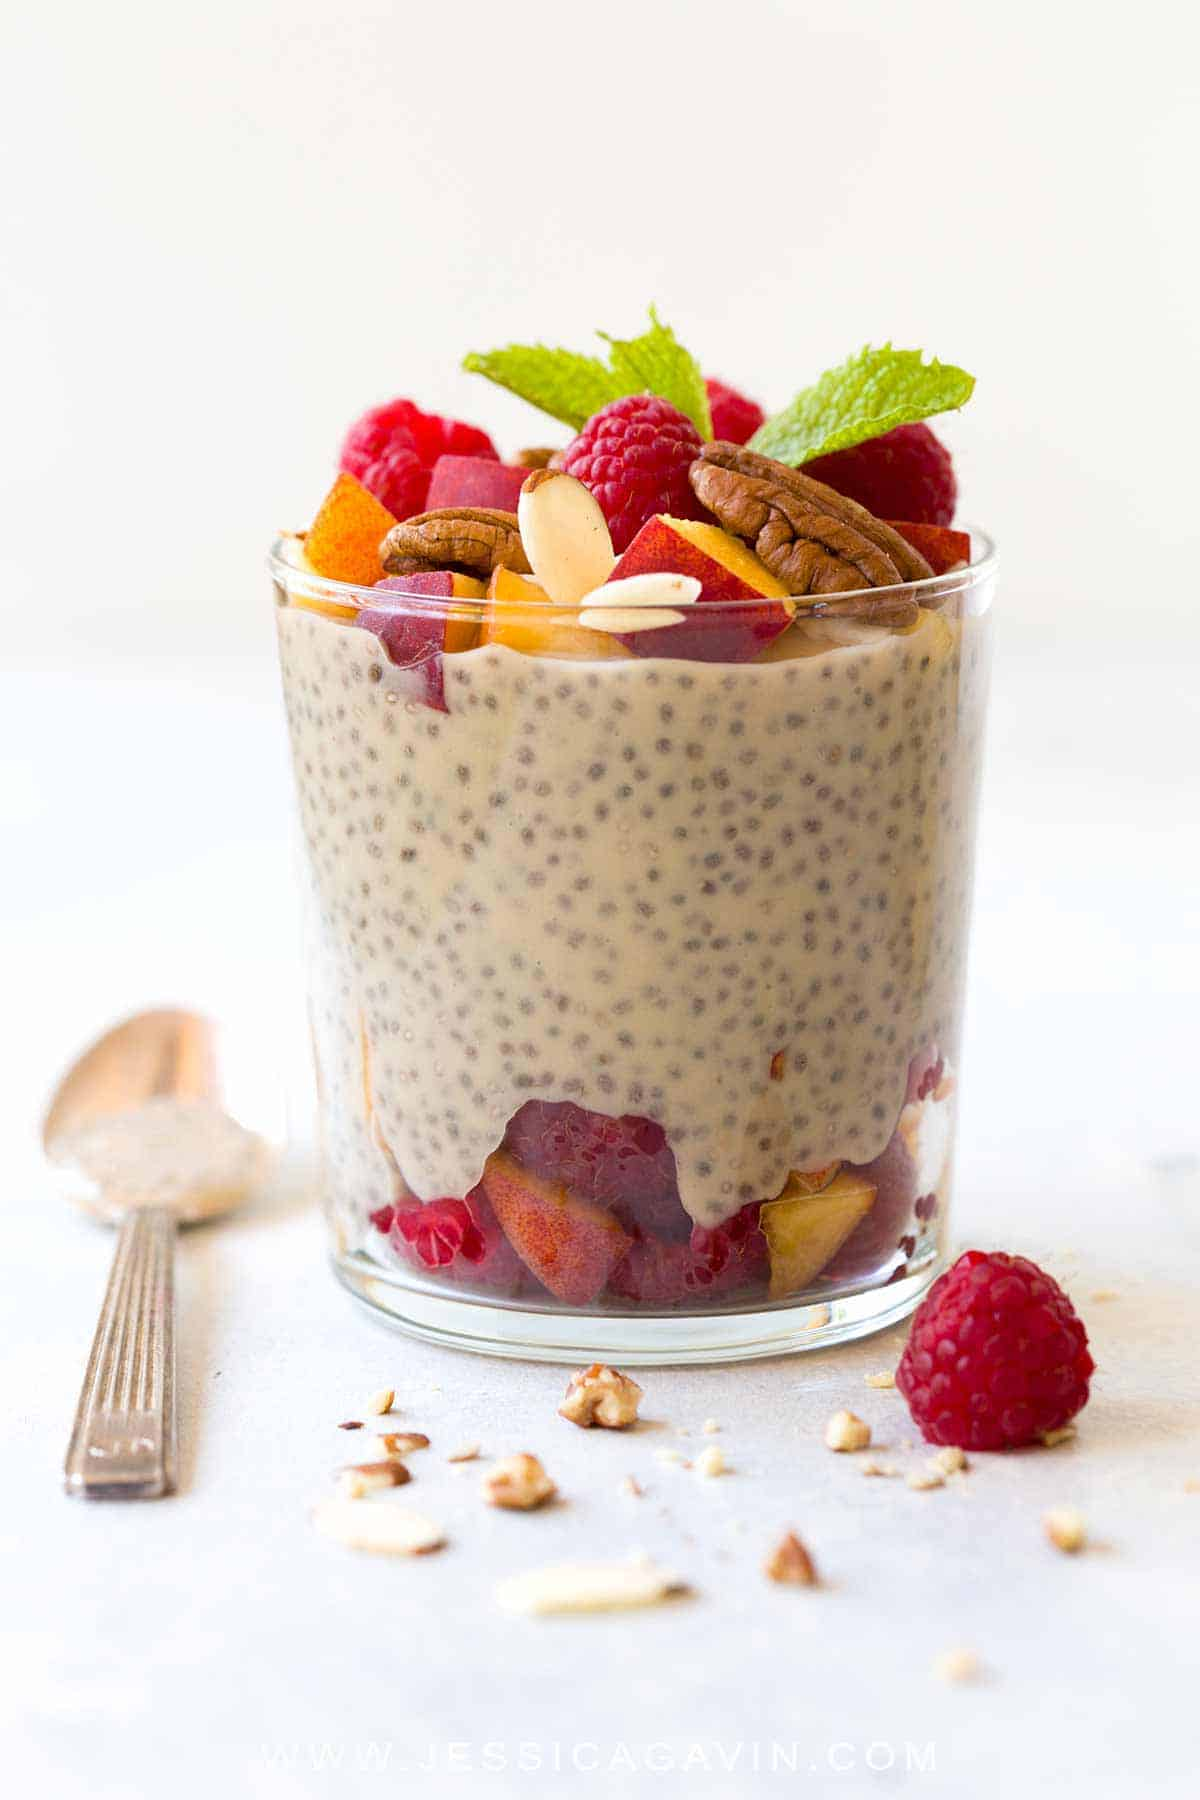 Chia seed protein pudding combines healthy nutrients like fiber and probiotics in every cup. Made with only 3 ingredients for an easy make-ahead recipe! Topped with fresh peaches, raspberries, and nuts for a tasty vegan snack. #chiaseeds #pudding #breakfast #vegan